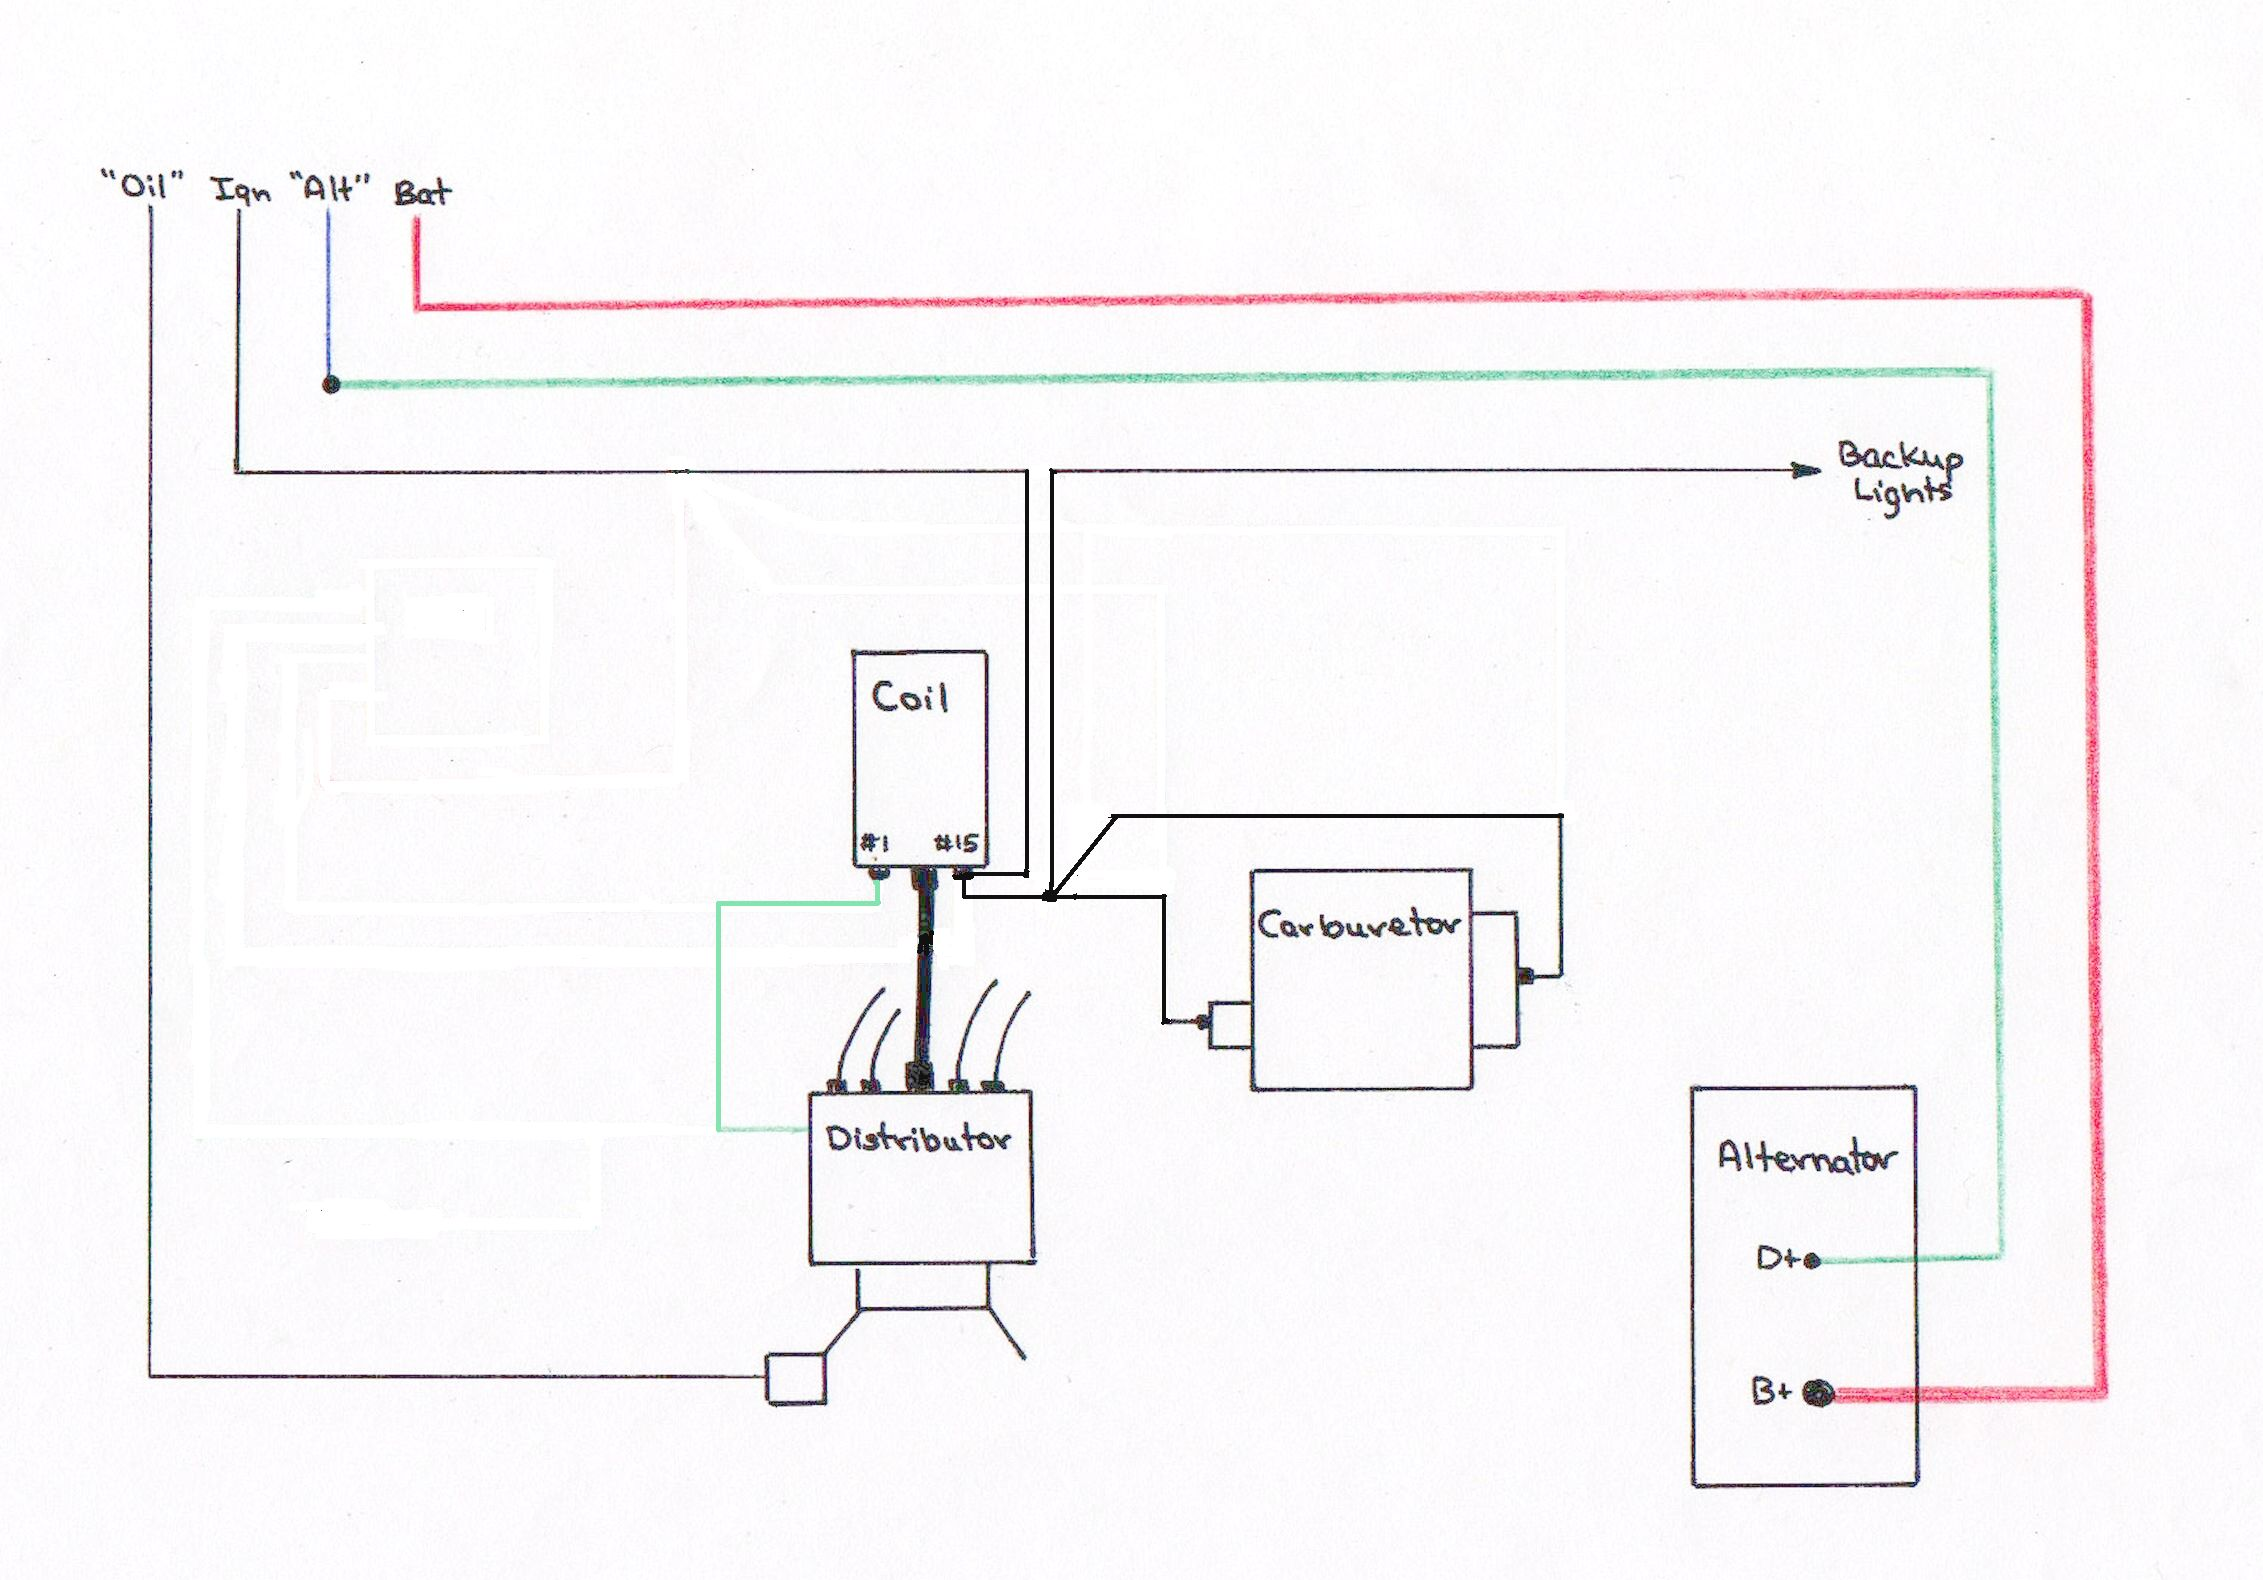 handdrawn_schematic alternator wiring vw ignition switch wiring diagram at crackthecode.co